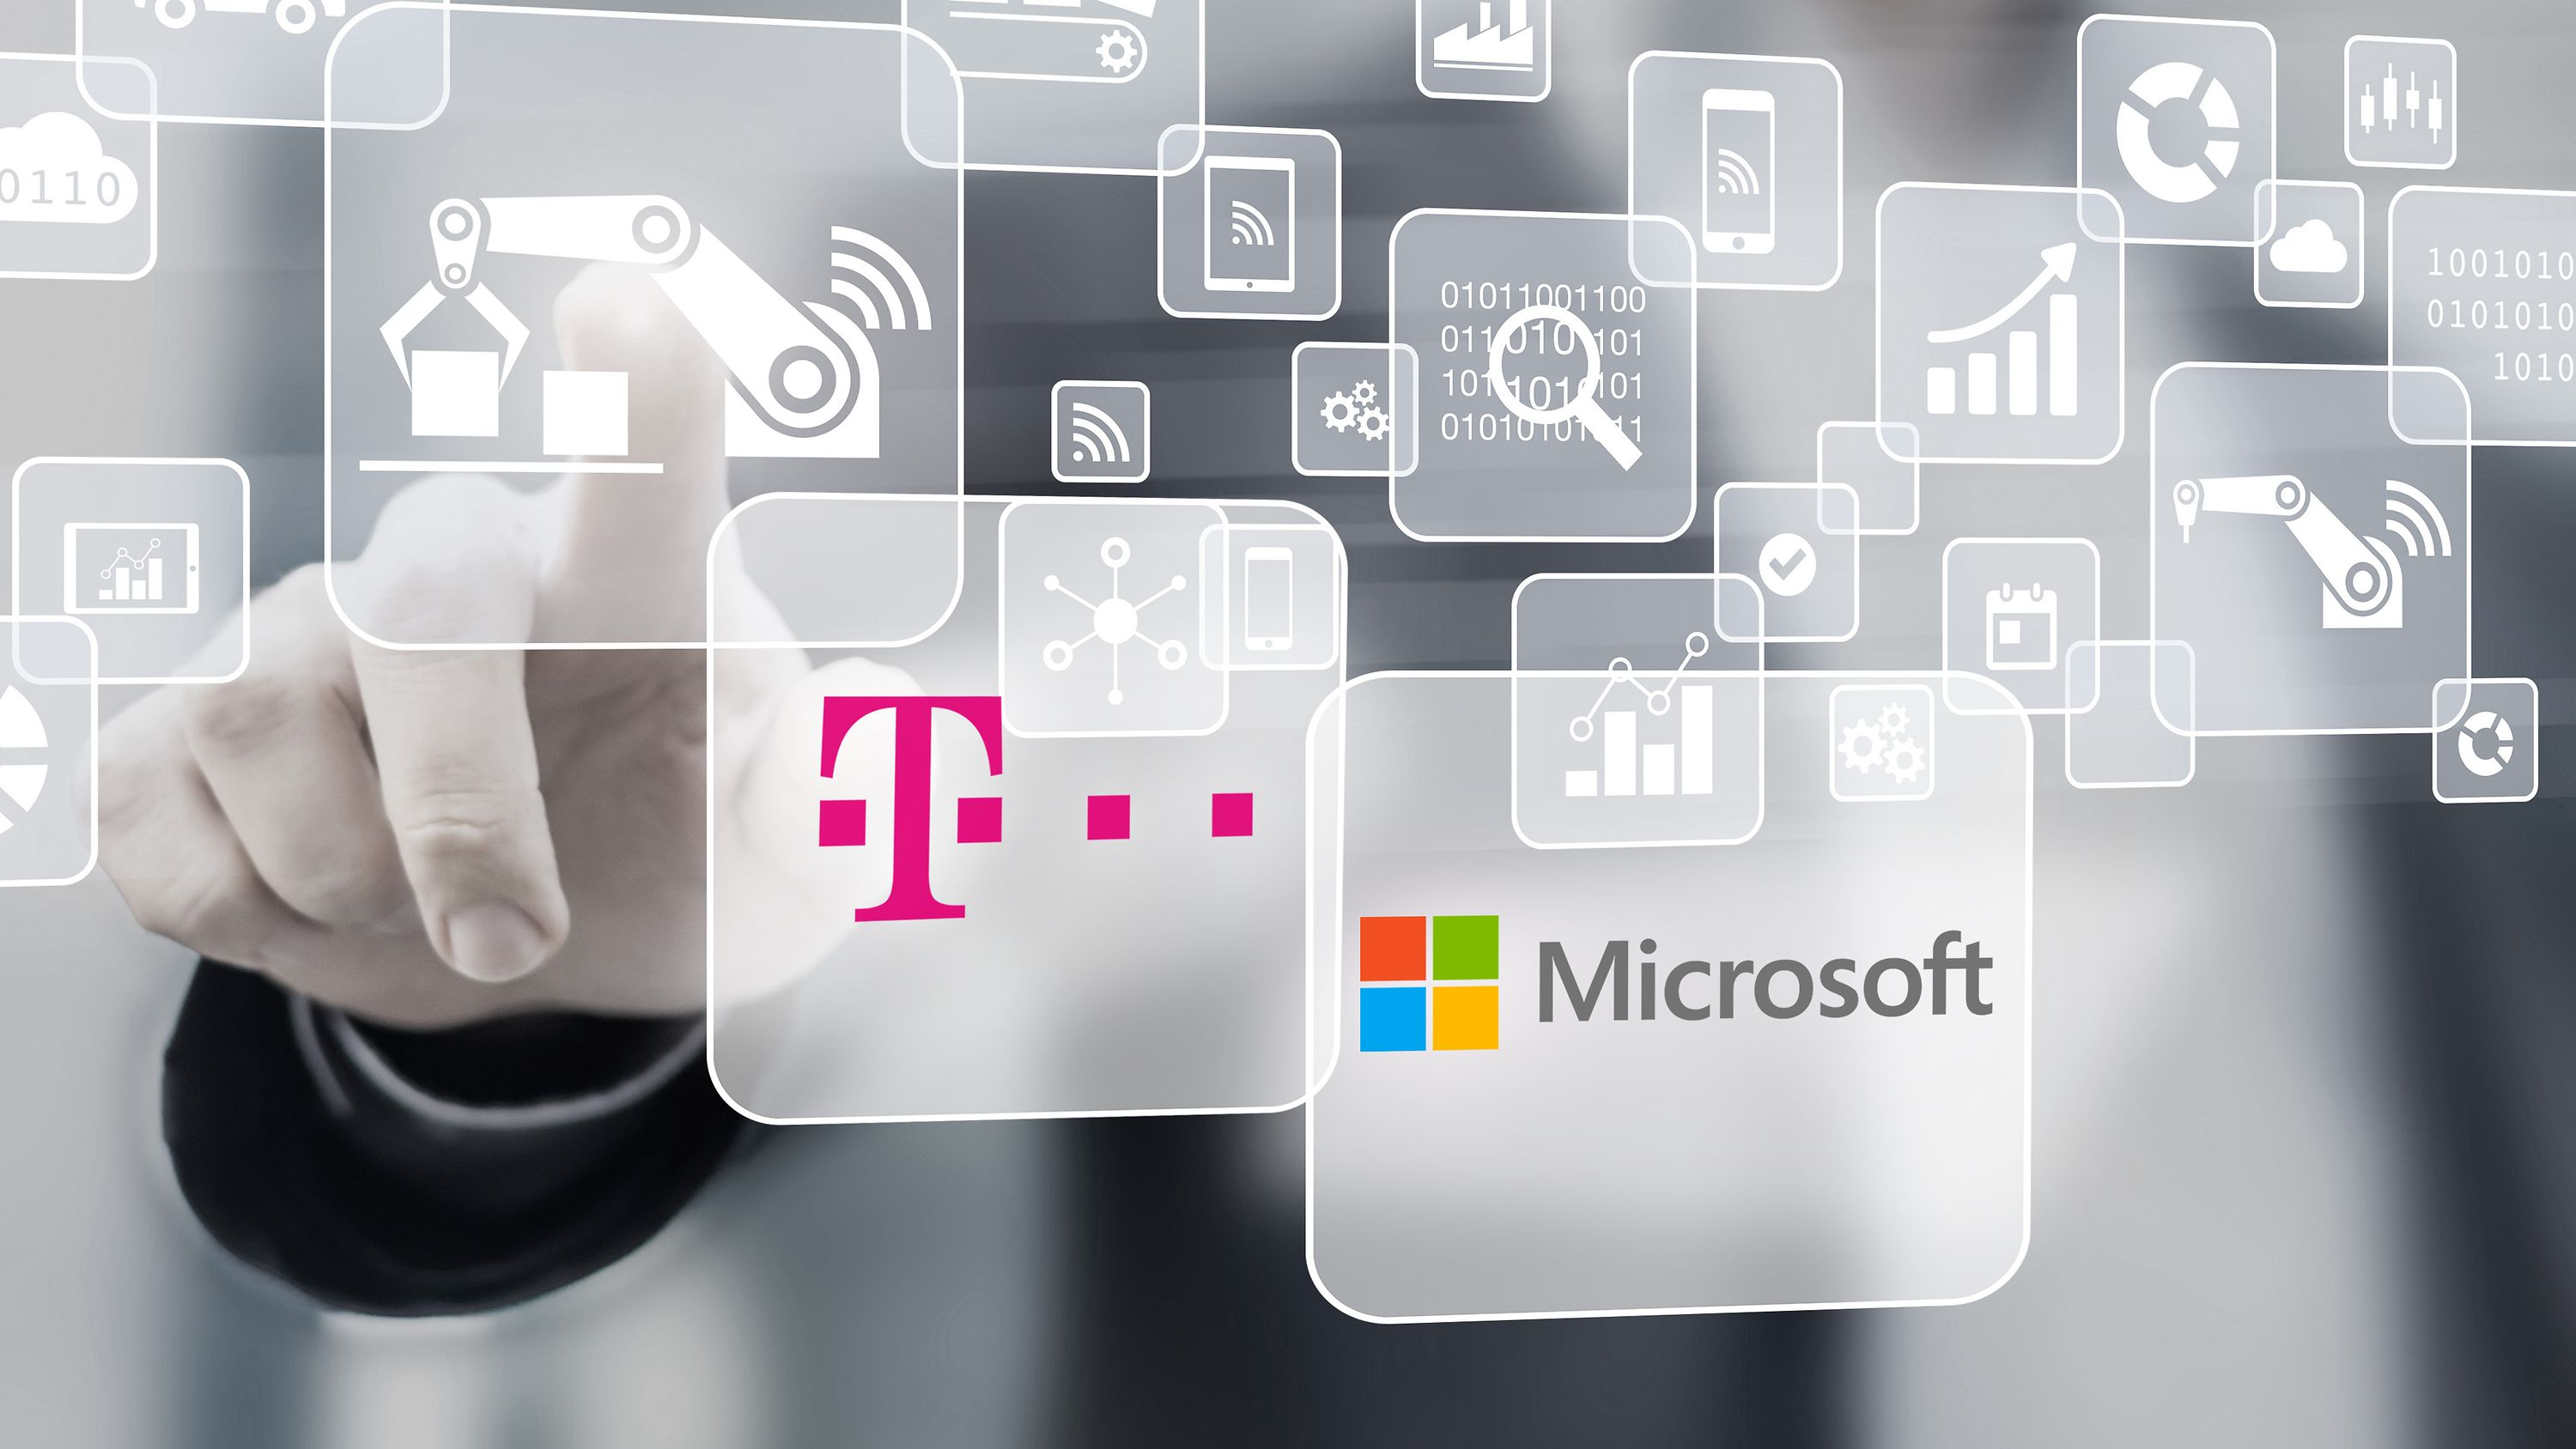 Telekom und Microsoft treiben Cloud-Innovation in Europa